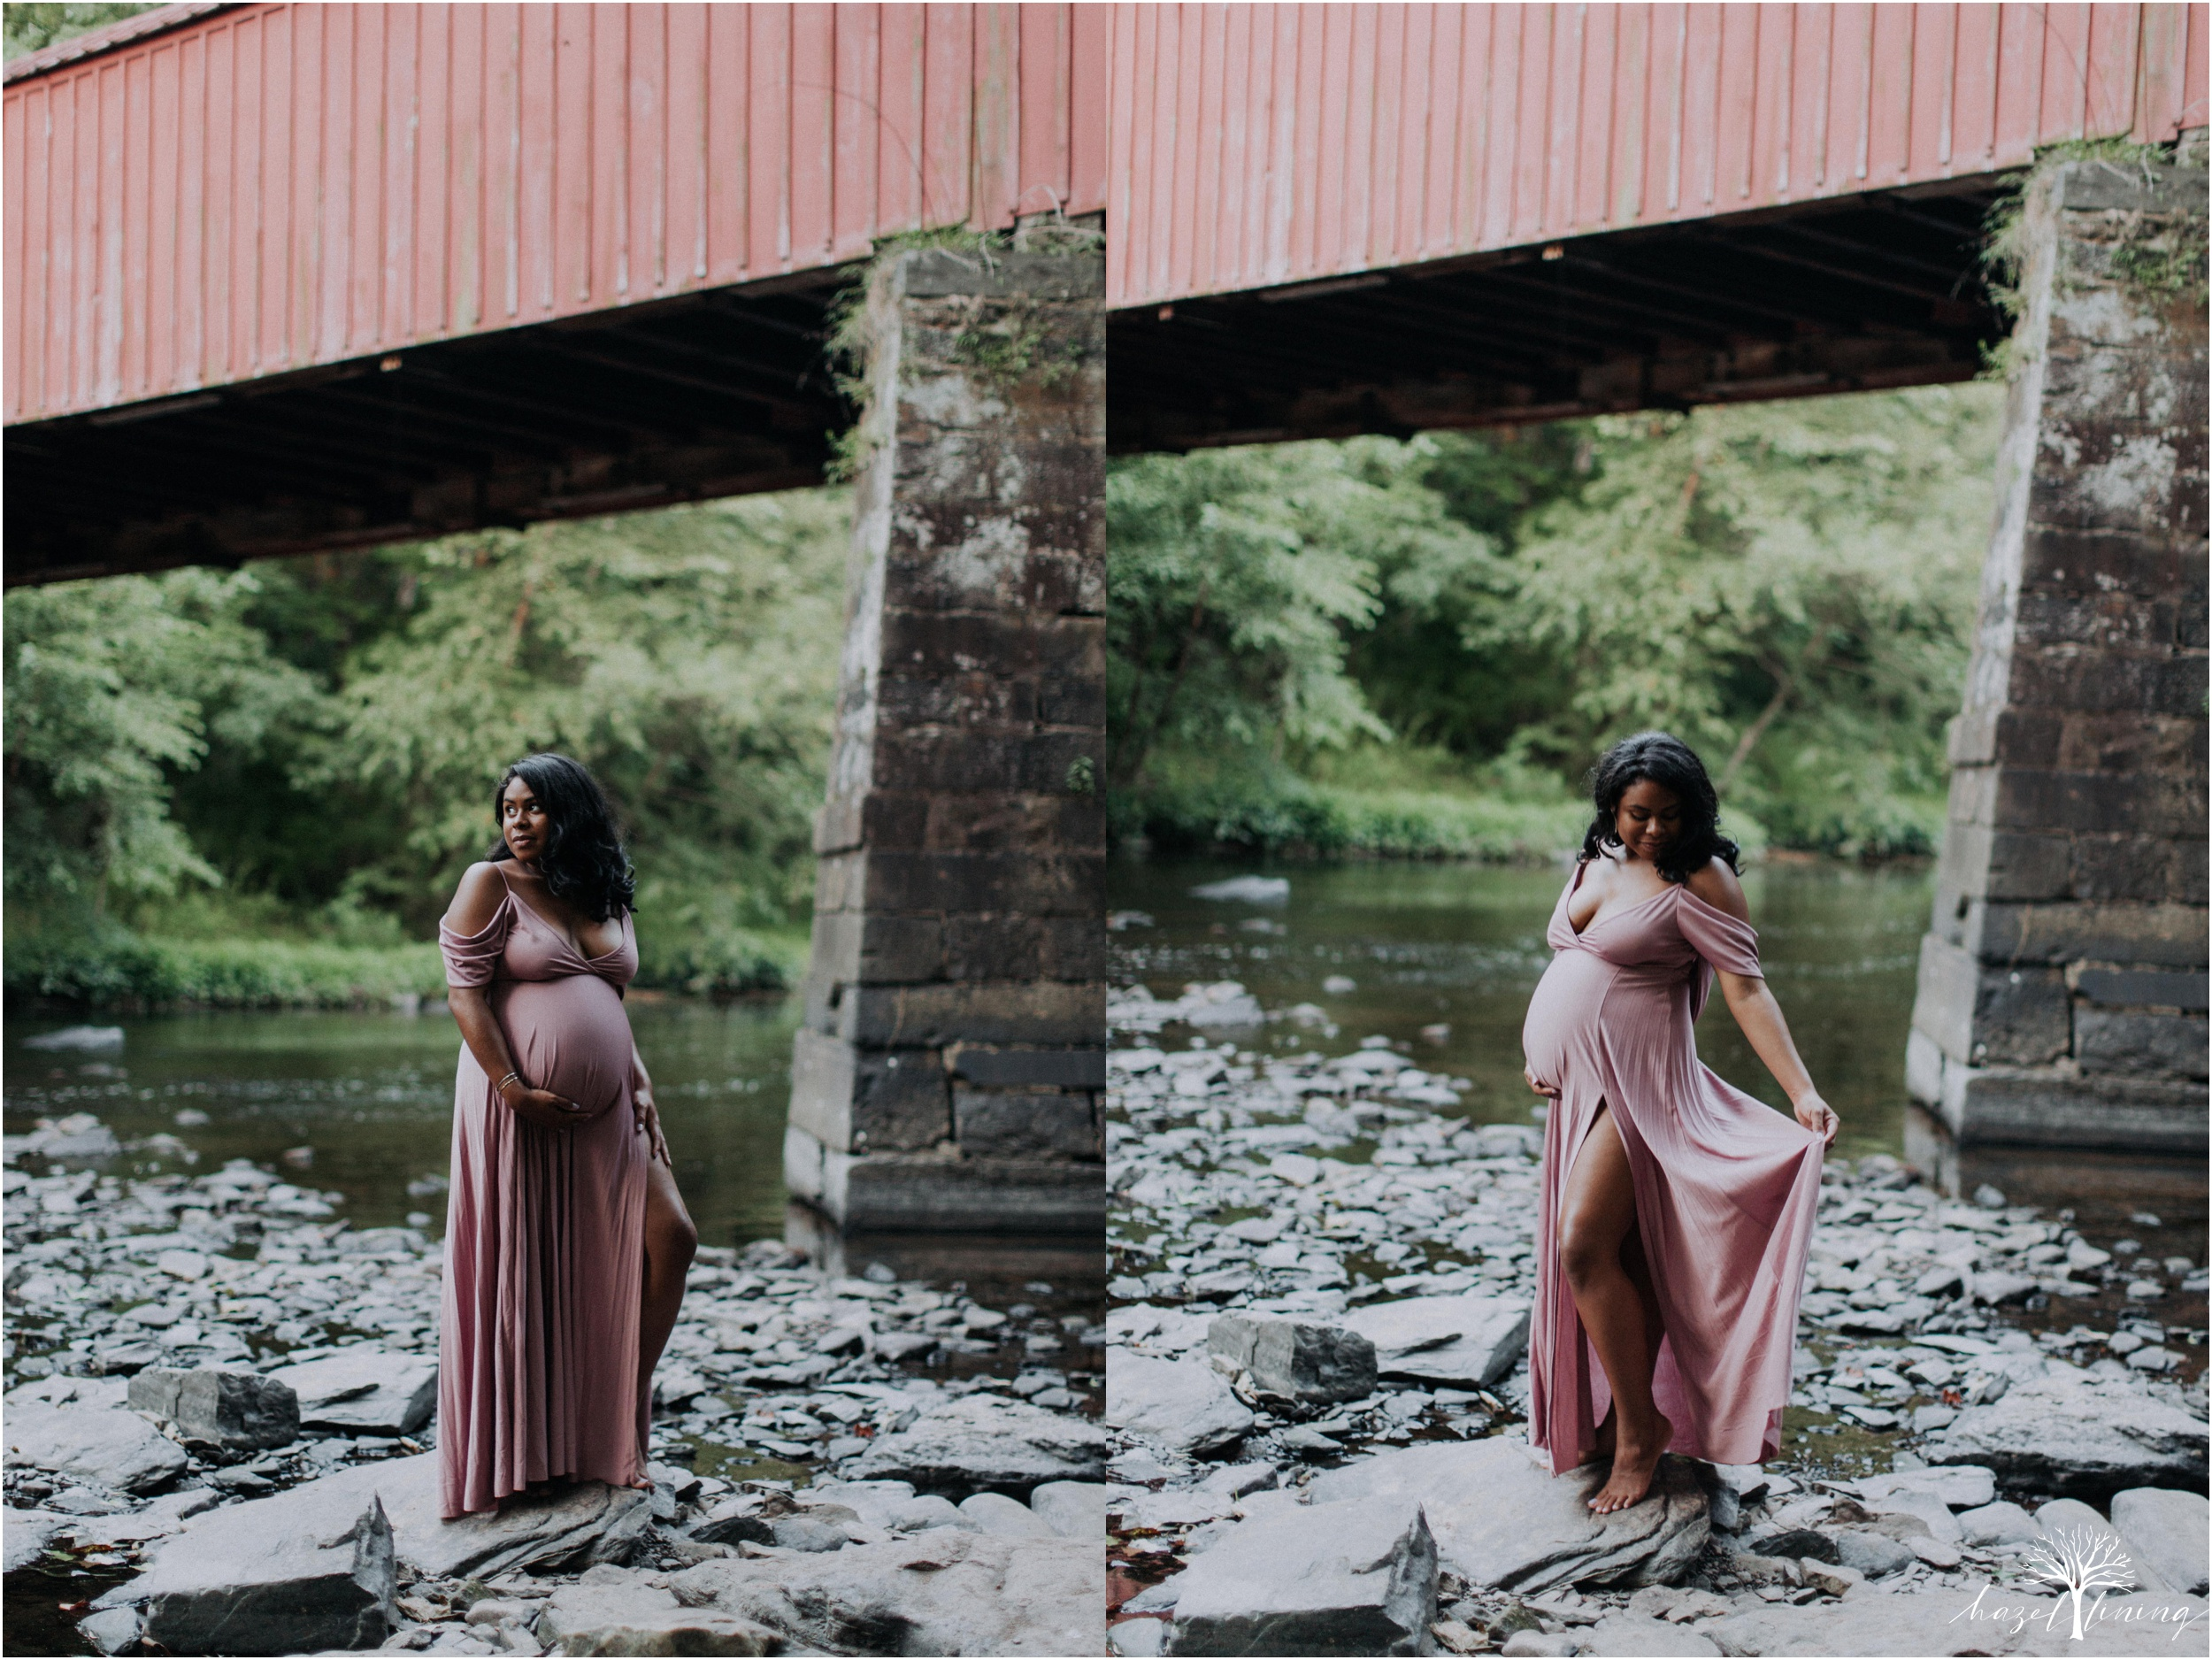 leyka-kristofer-chaparro-ralph-stover-state-park-summer-golden-hour-stream-maternity-session-hazel-lining-travel-wedding-elopement-photography_0009.jpg